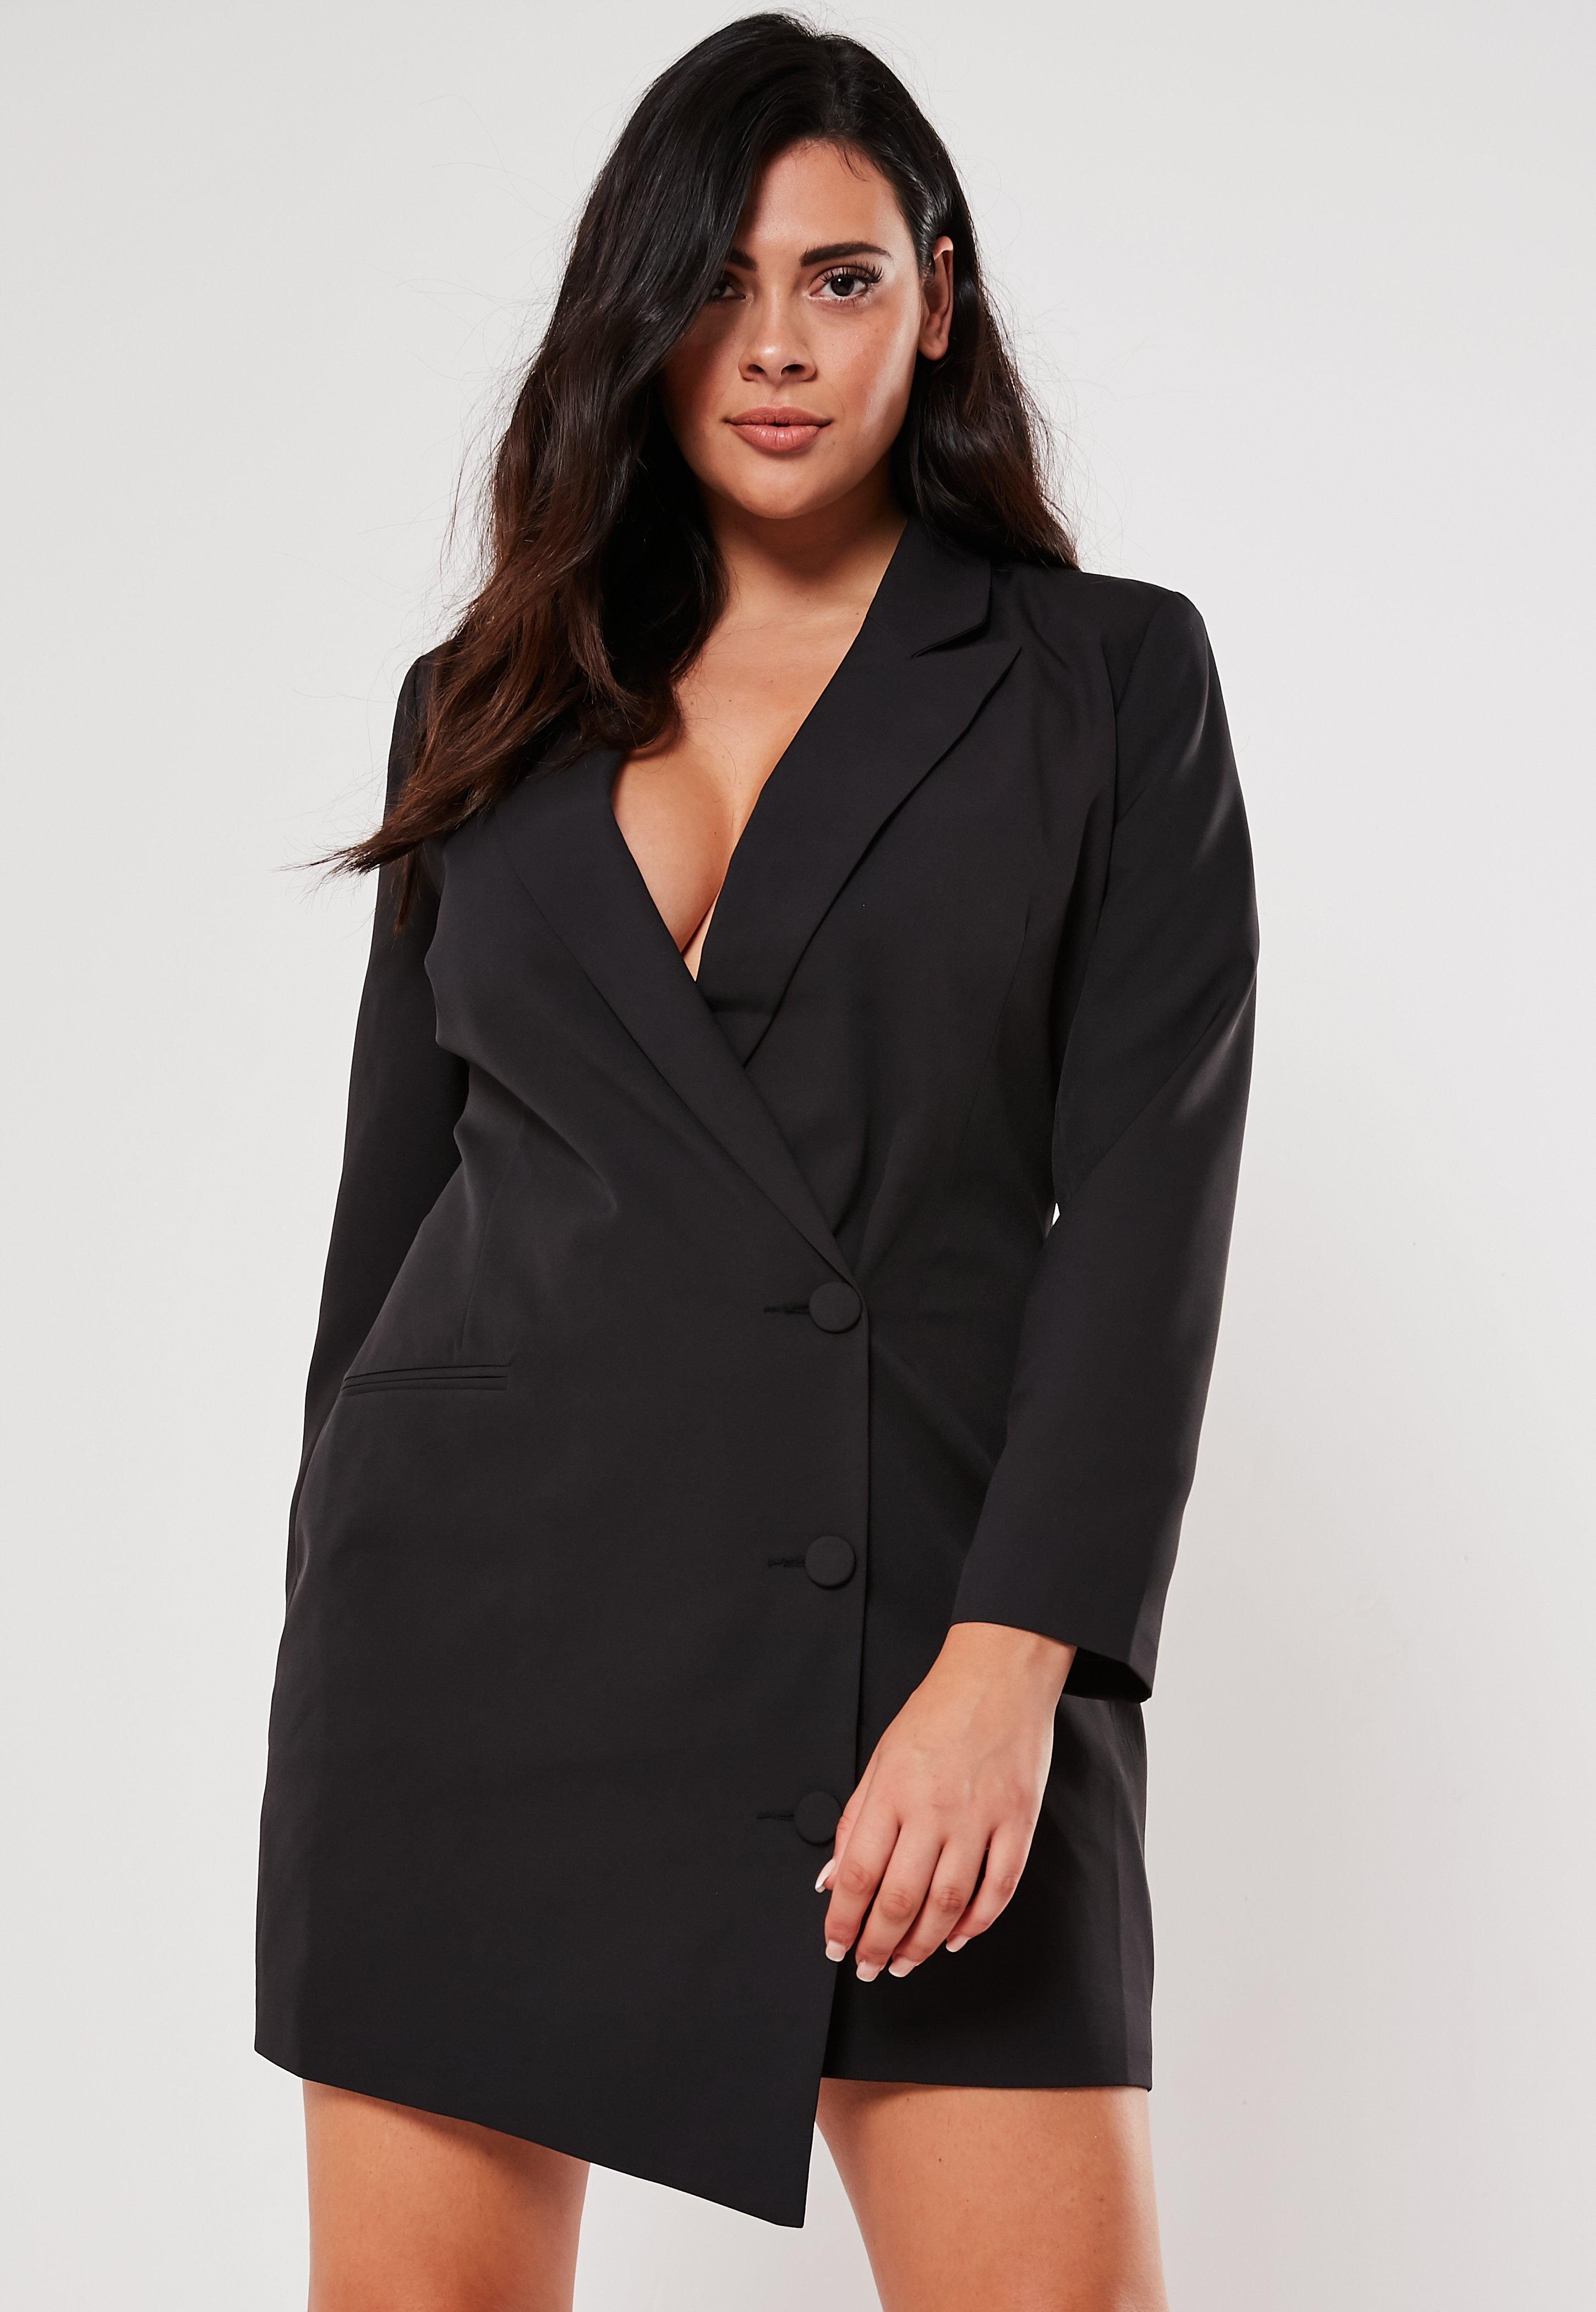 Plus Size Black Button Front Blazer Dress